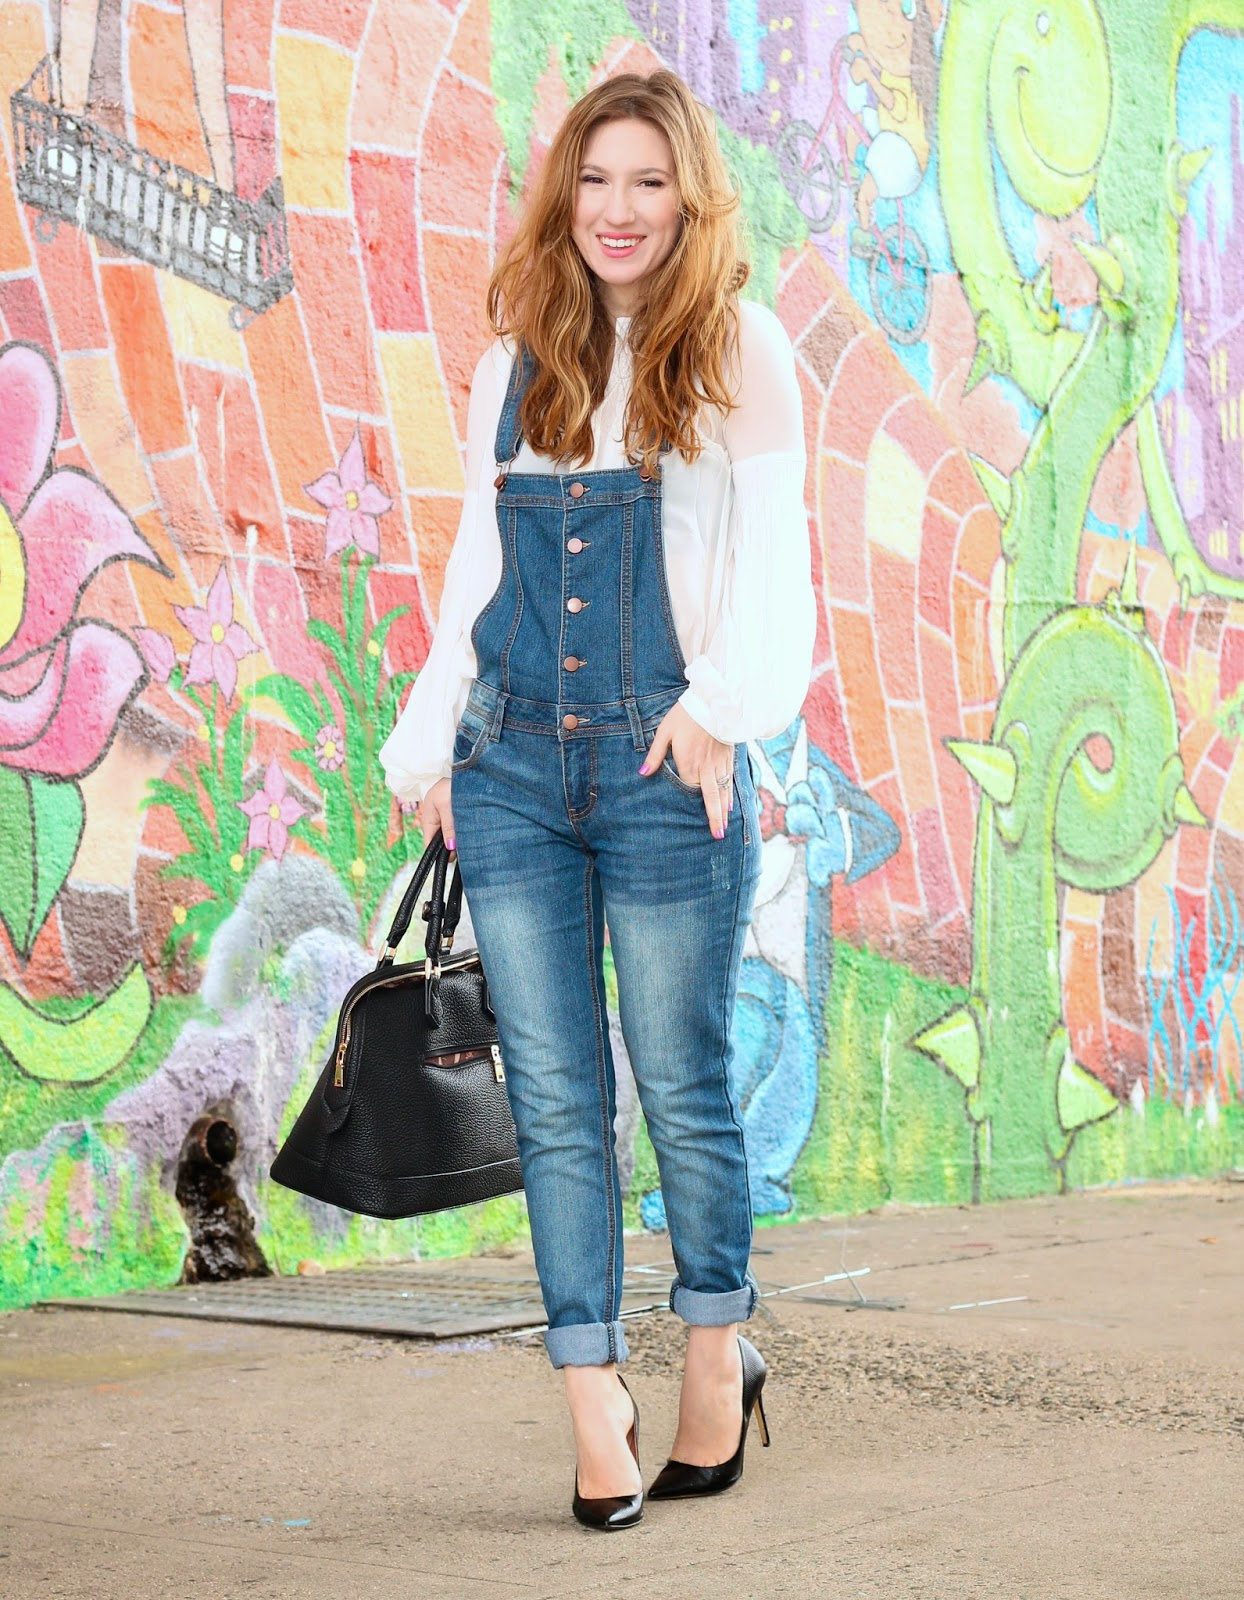 bloggers wearing overalls